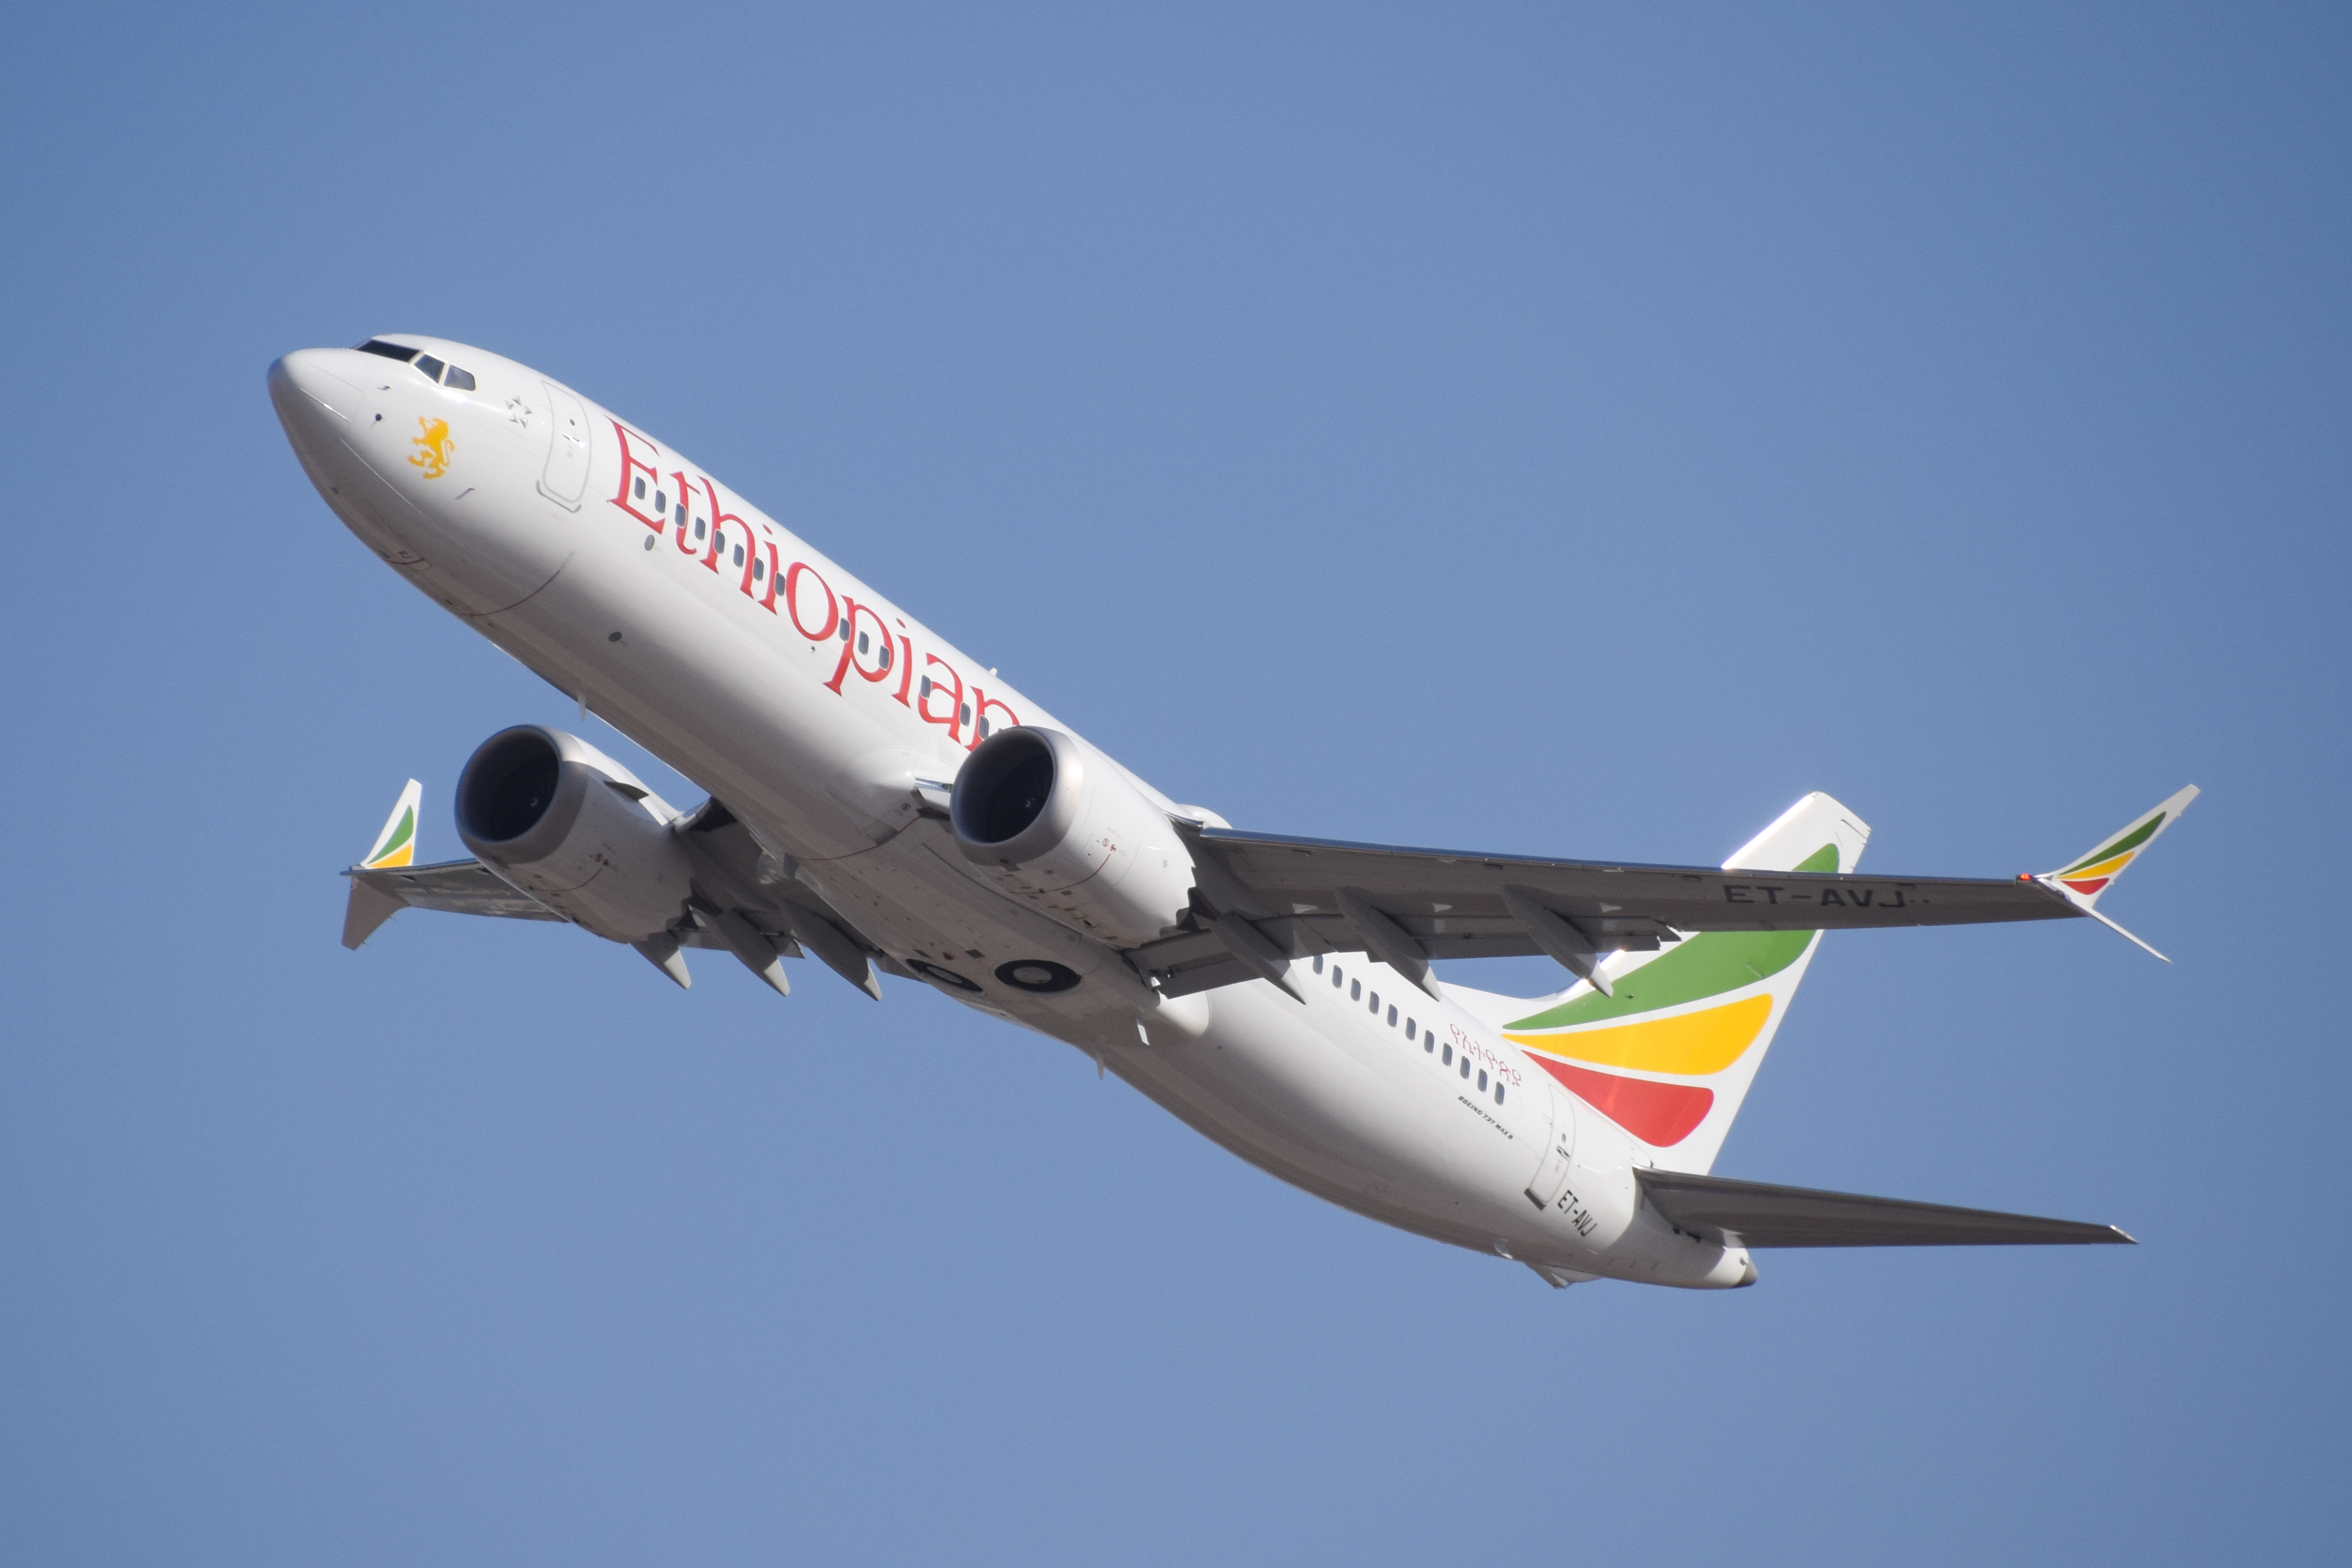 Ethiopian Airlines flight ET302, operated on a Boeing 737 MAX 8, crashed six minutes after take-off, killing all 157 on board.